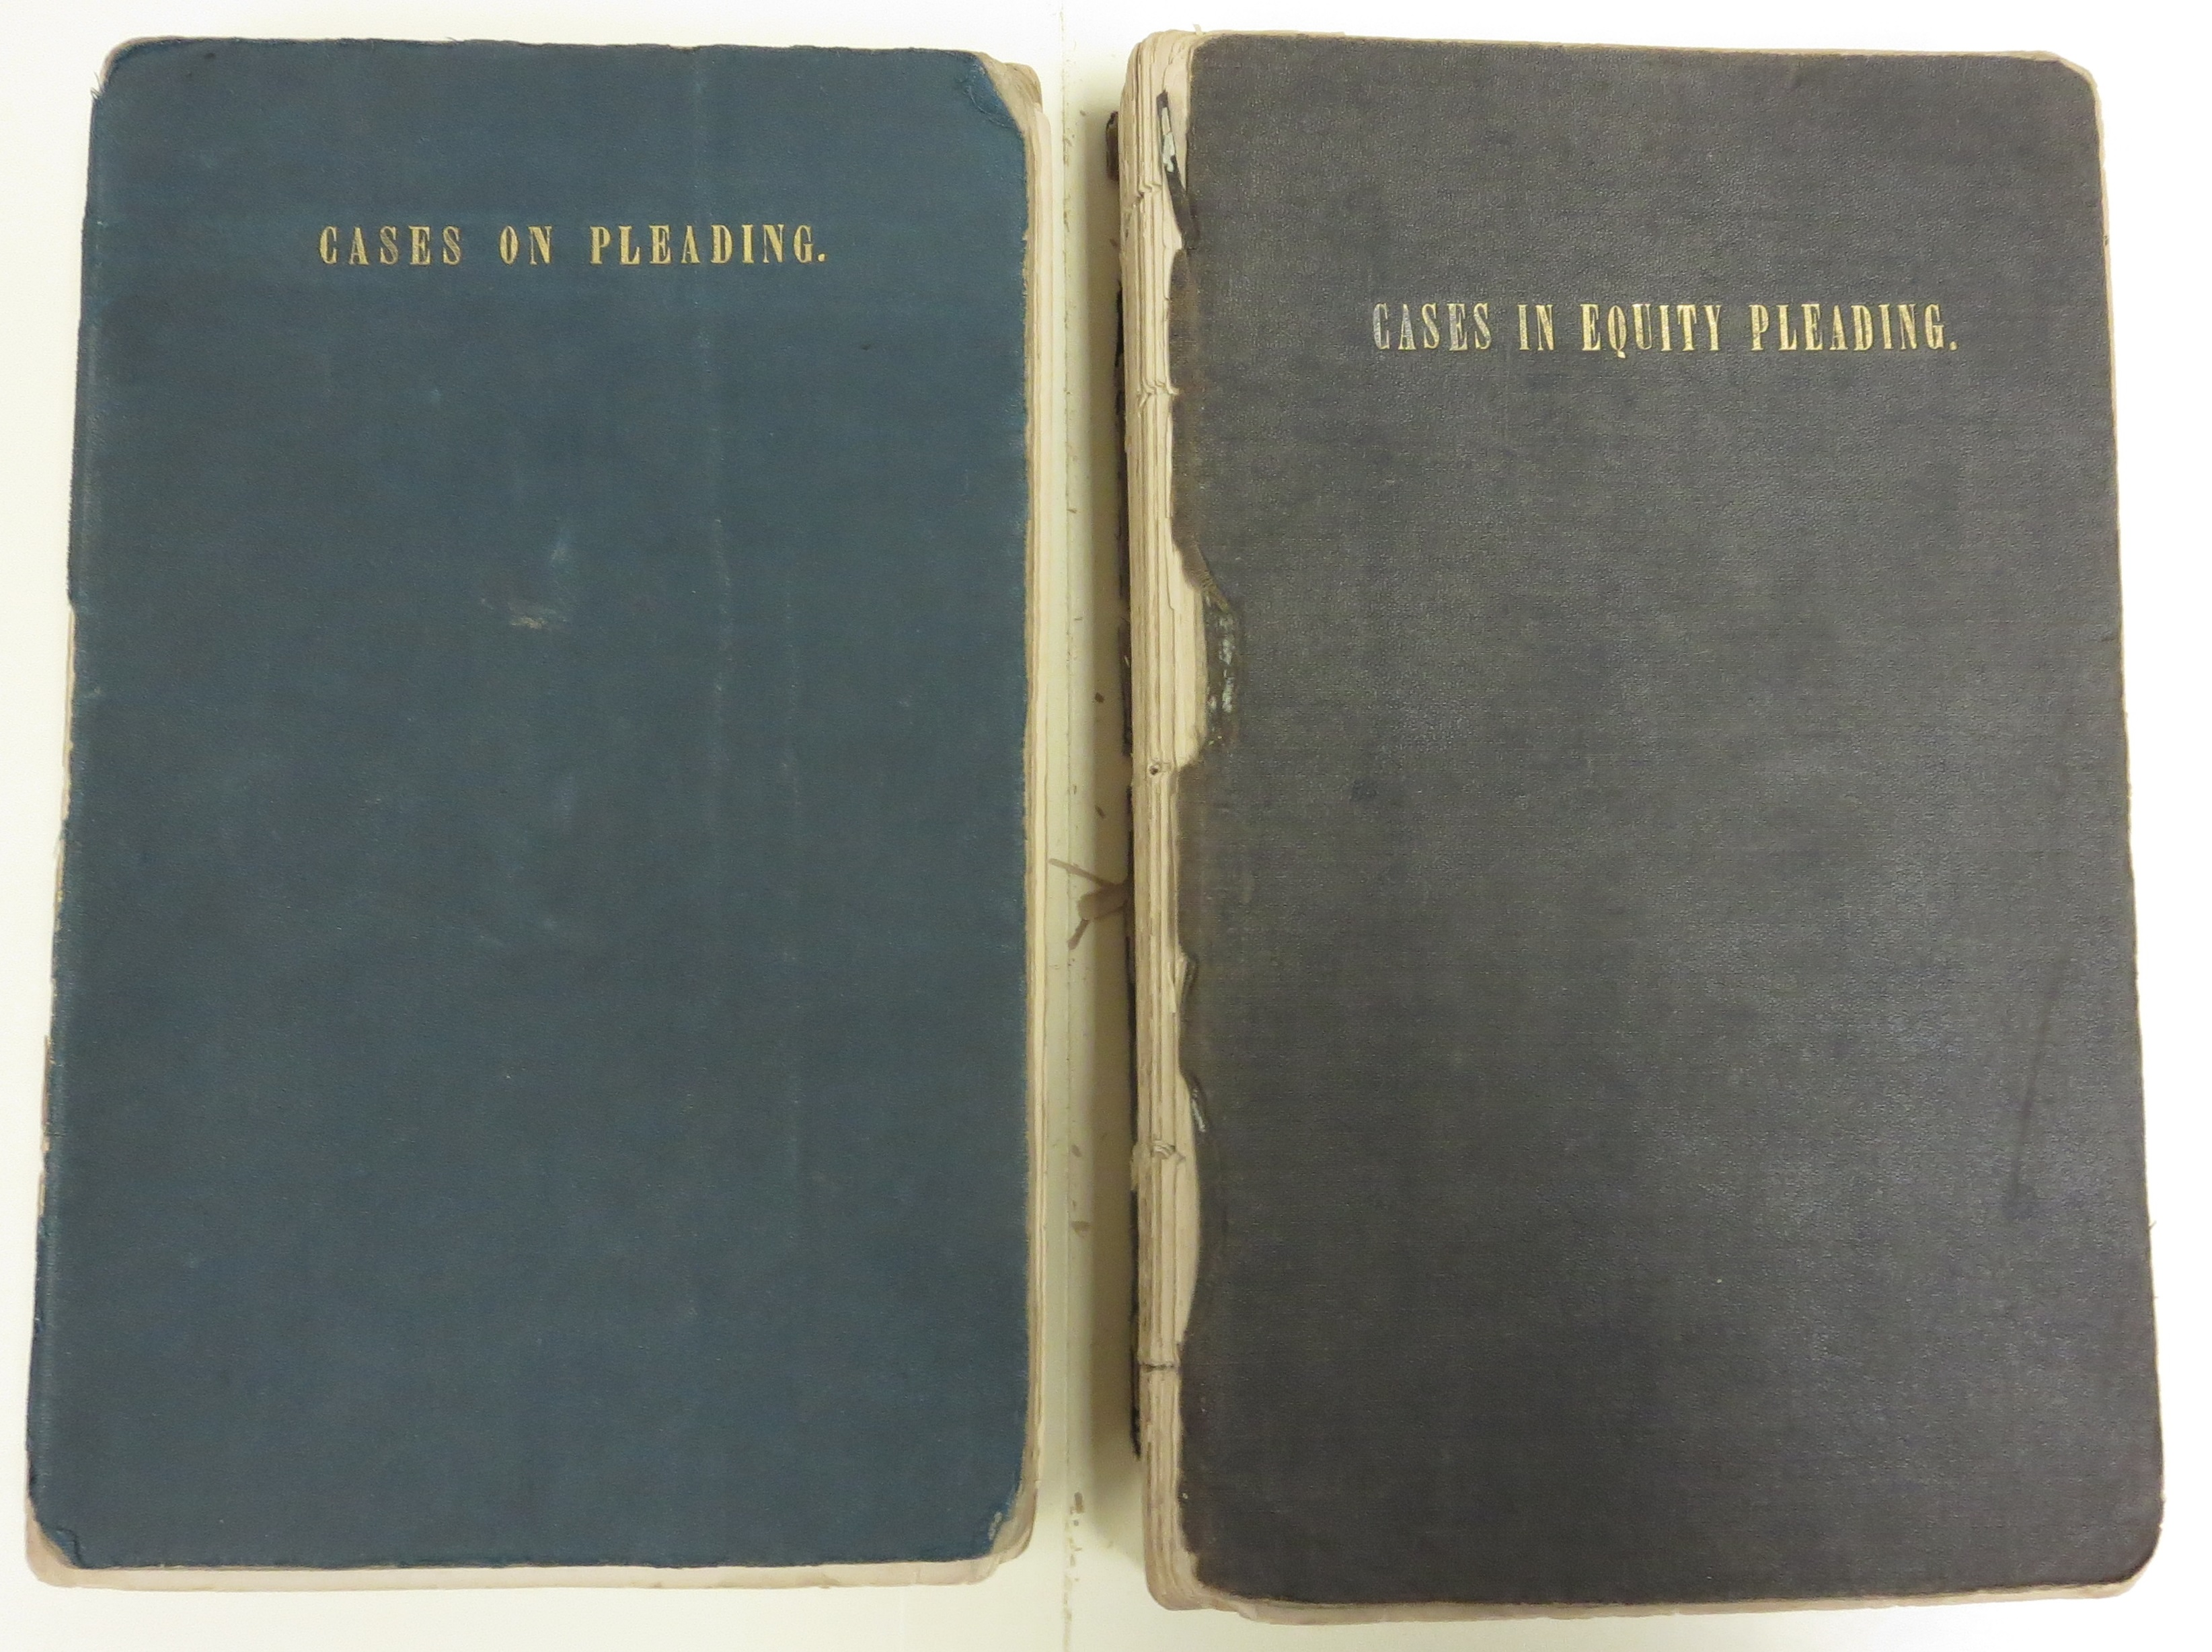 The covers of Cases on Pleading and Cases in Equity Pleading.